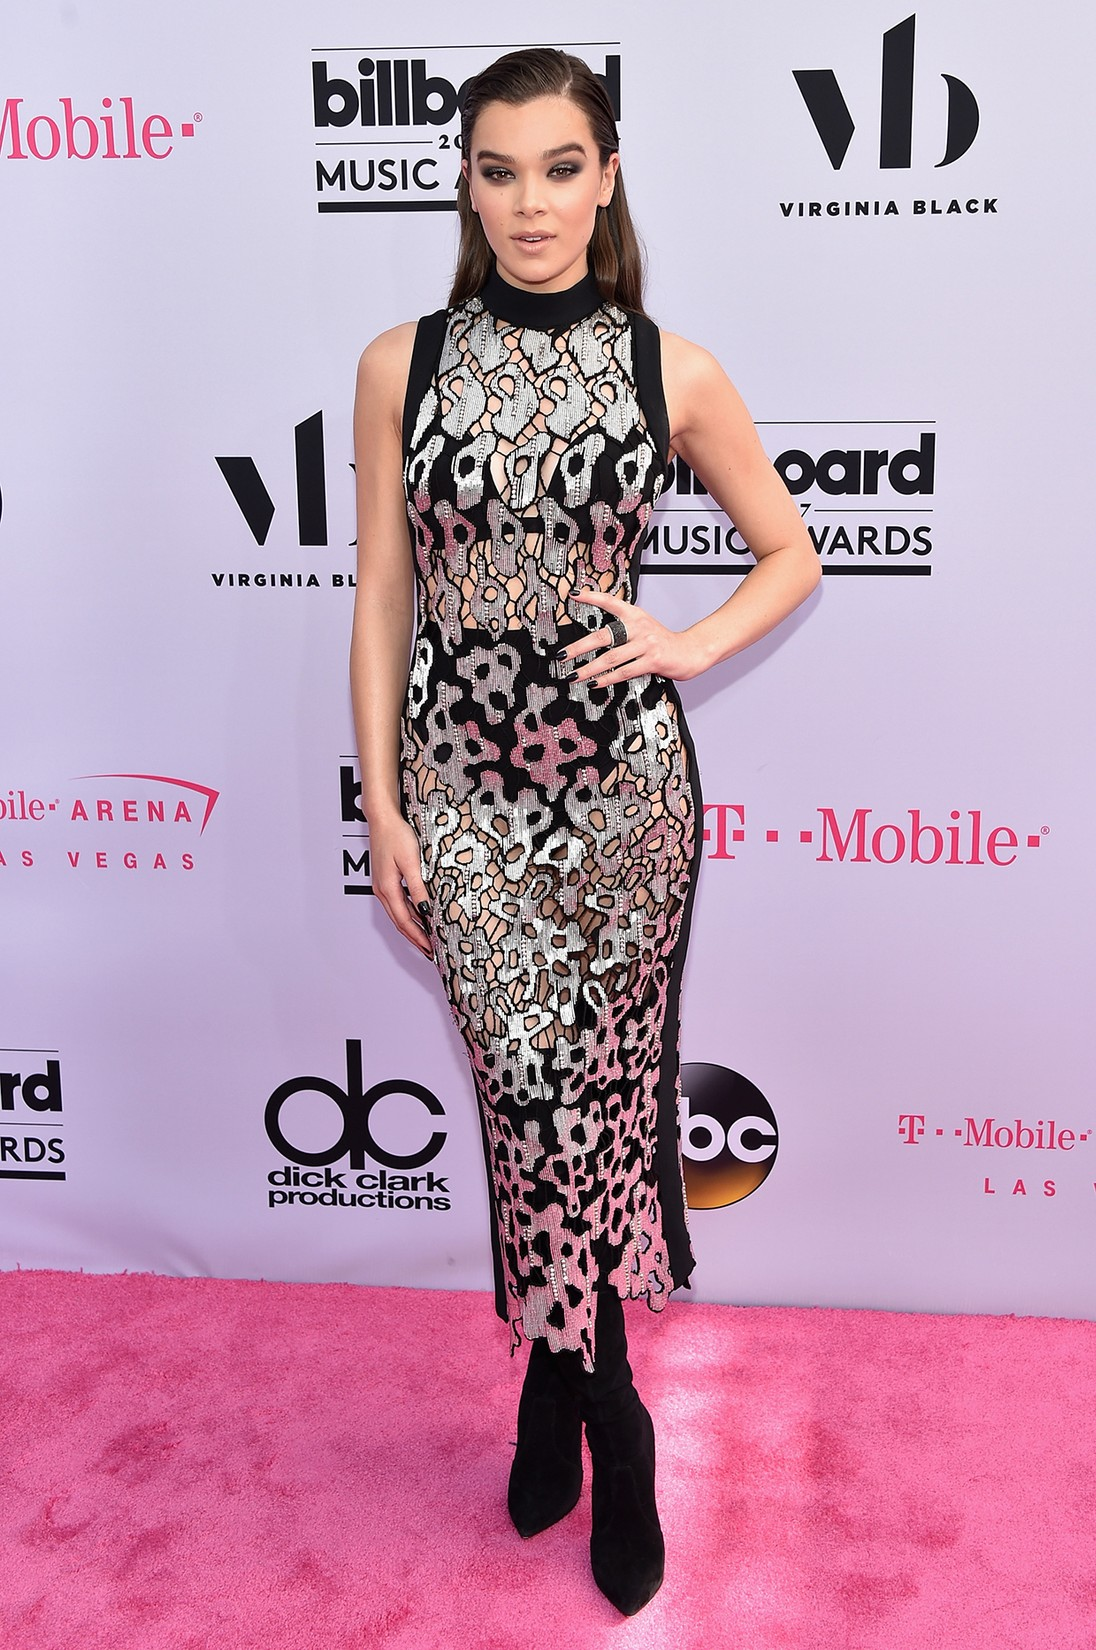 Hailee Steinfeld attends the 2017 Billboard Music Awards at T-Mobile Arena on May 21, 2017 in Las Vegas.